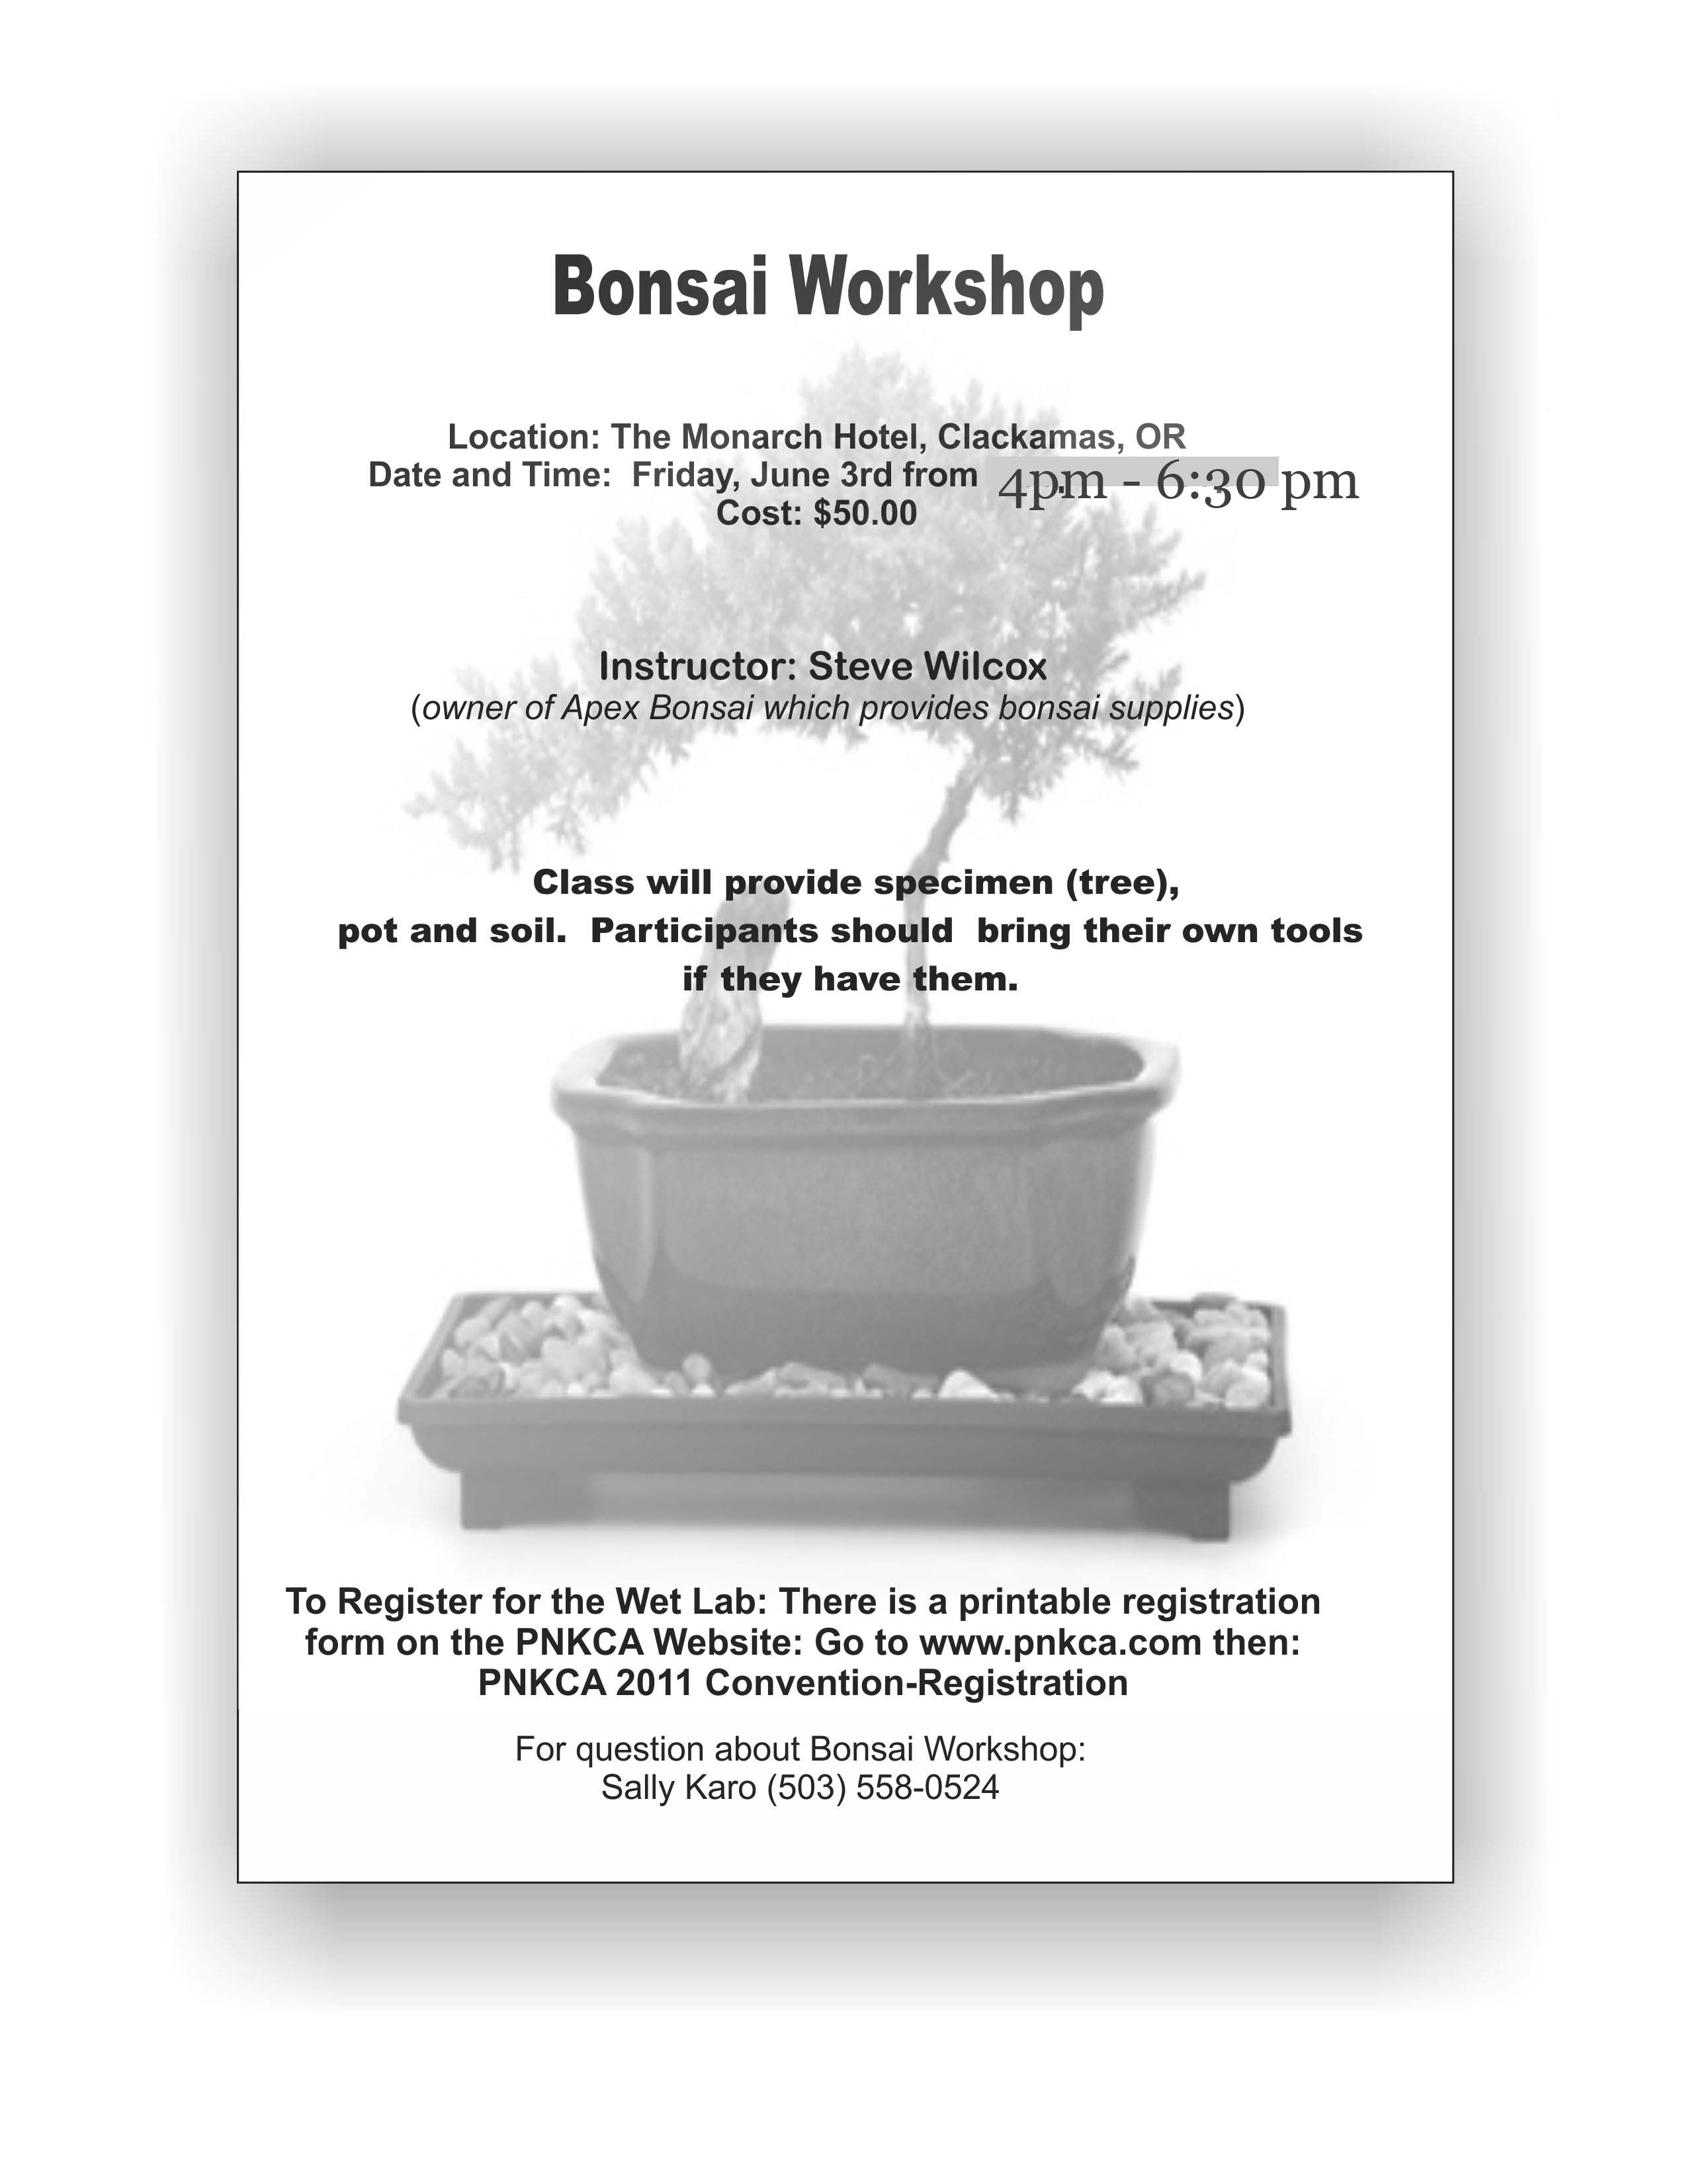 bonsai_workshop2new.jpg